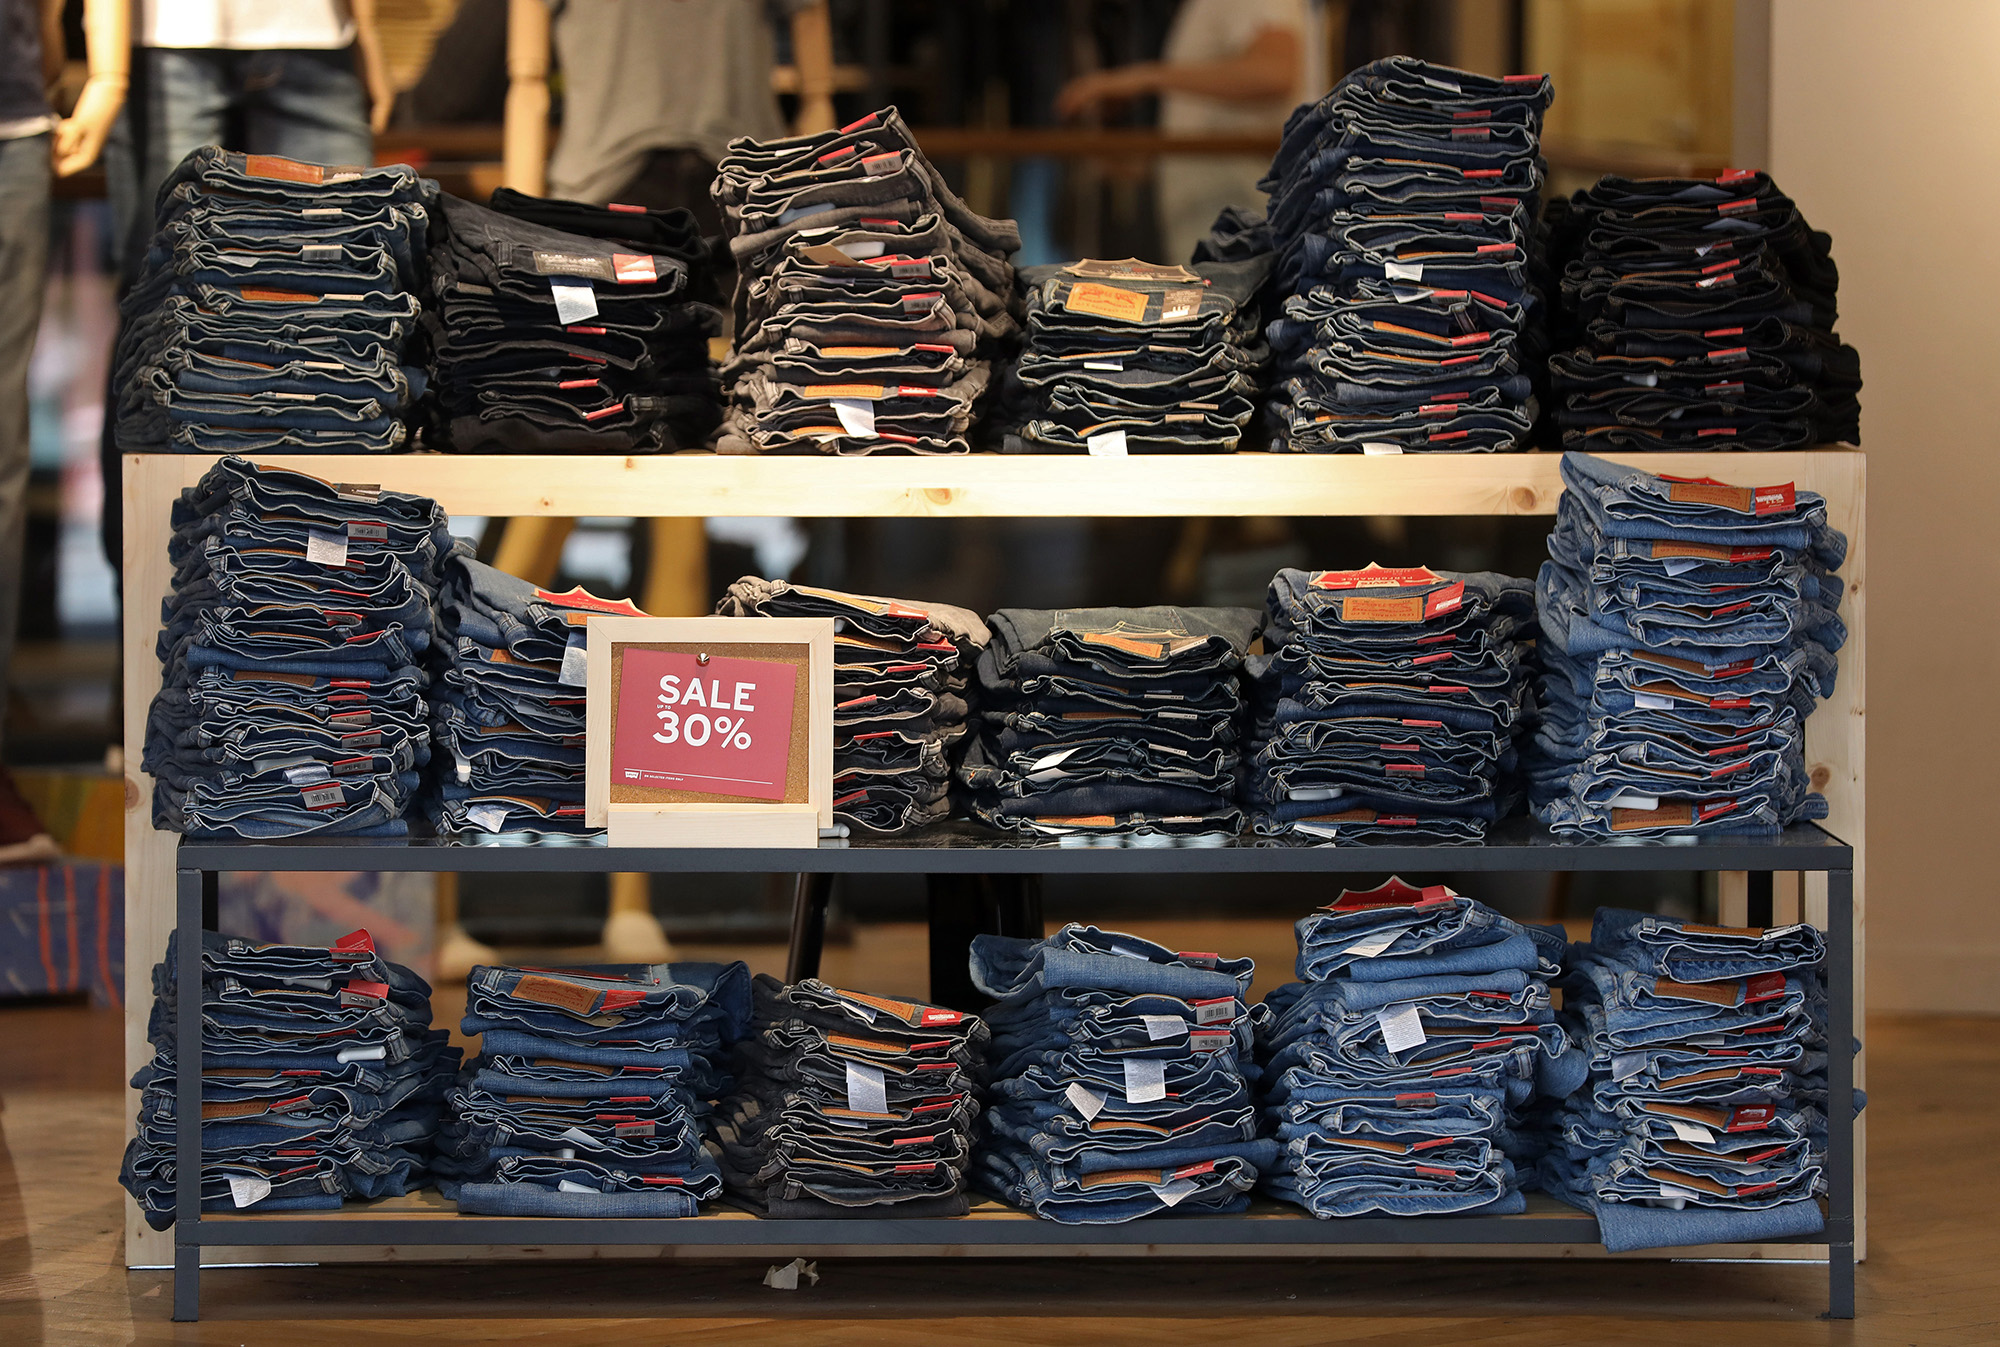 Piles of jeans sit displayed for sale inside a Levi Strauss & Co. fashion store in London